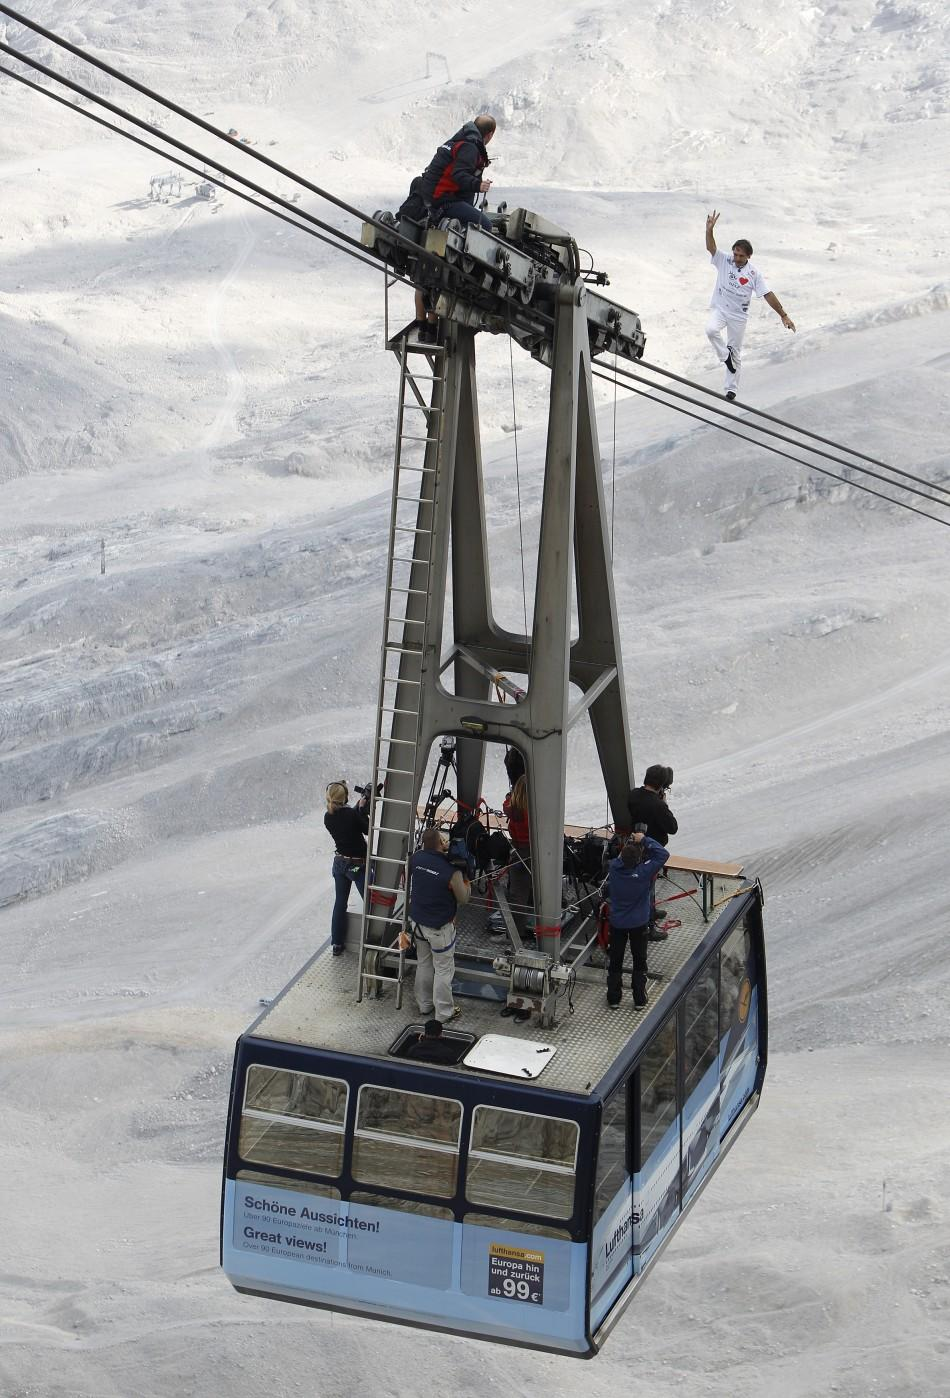 A Record-Breaking Rope Walk on Germany's Highest Ropeway